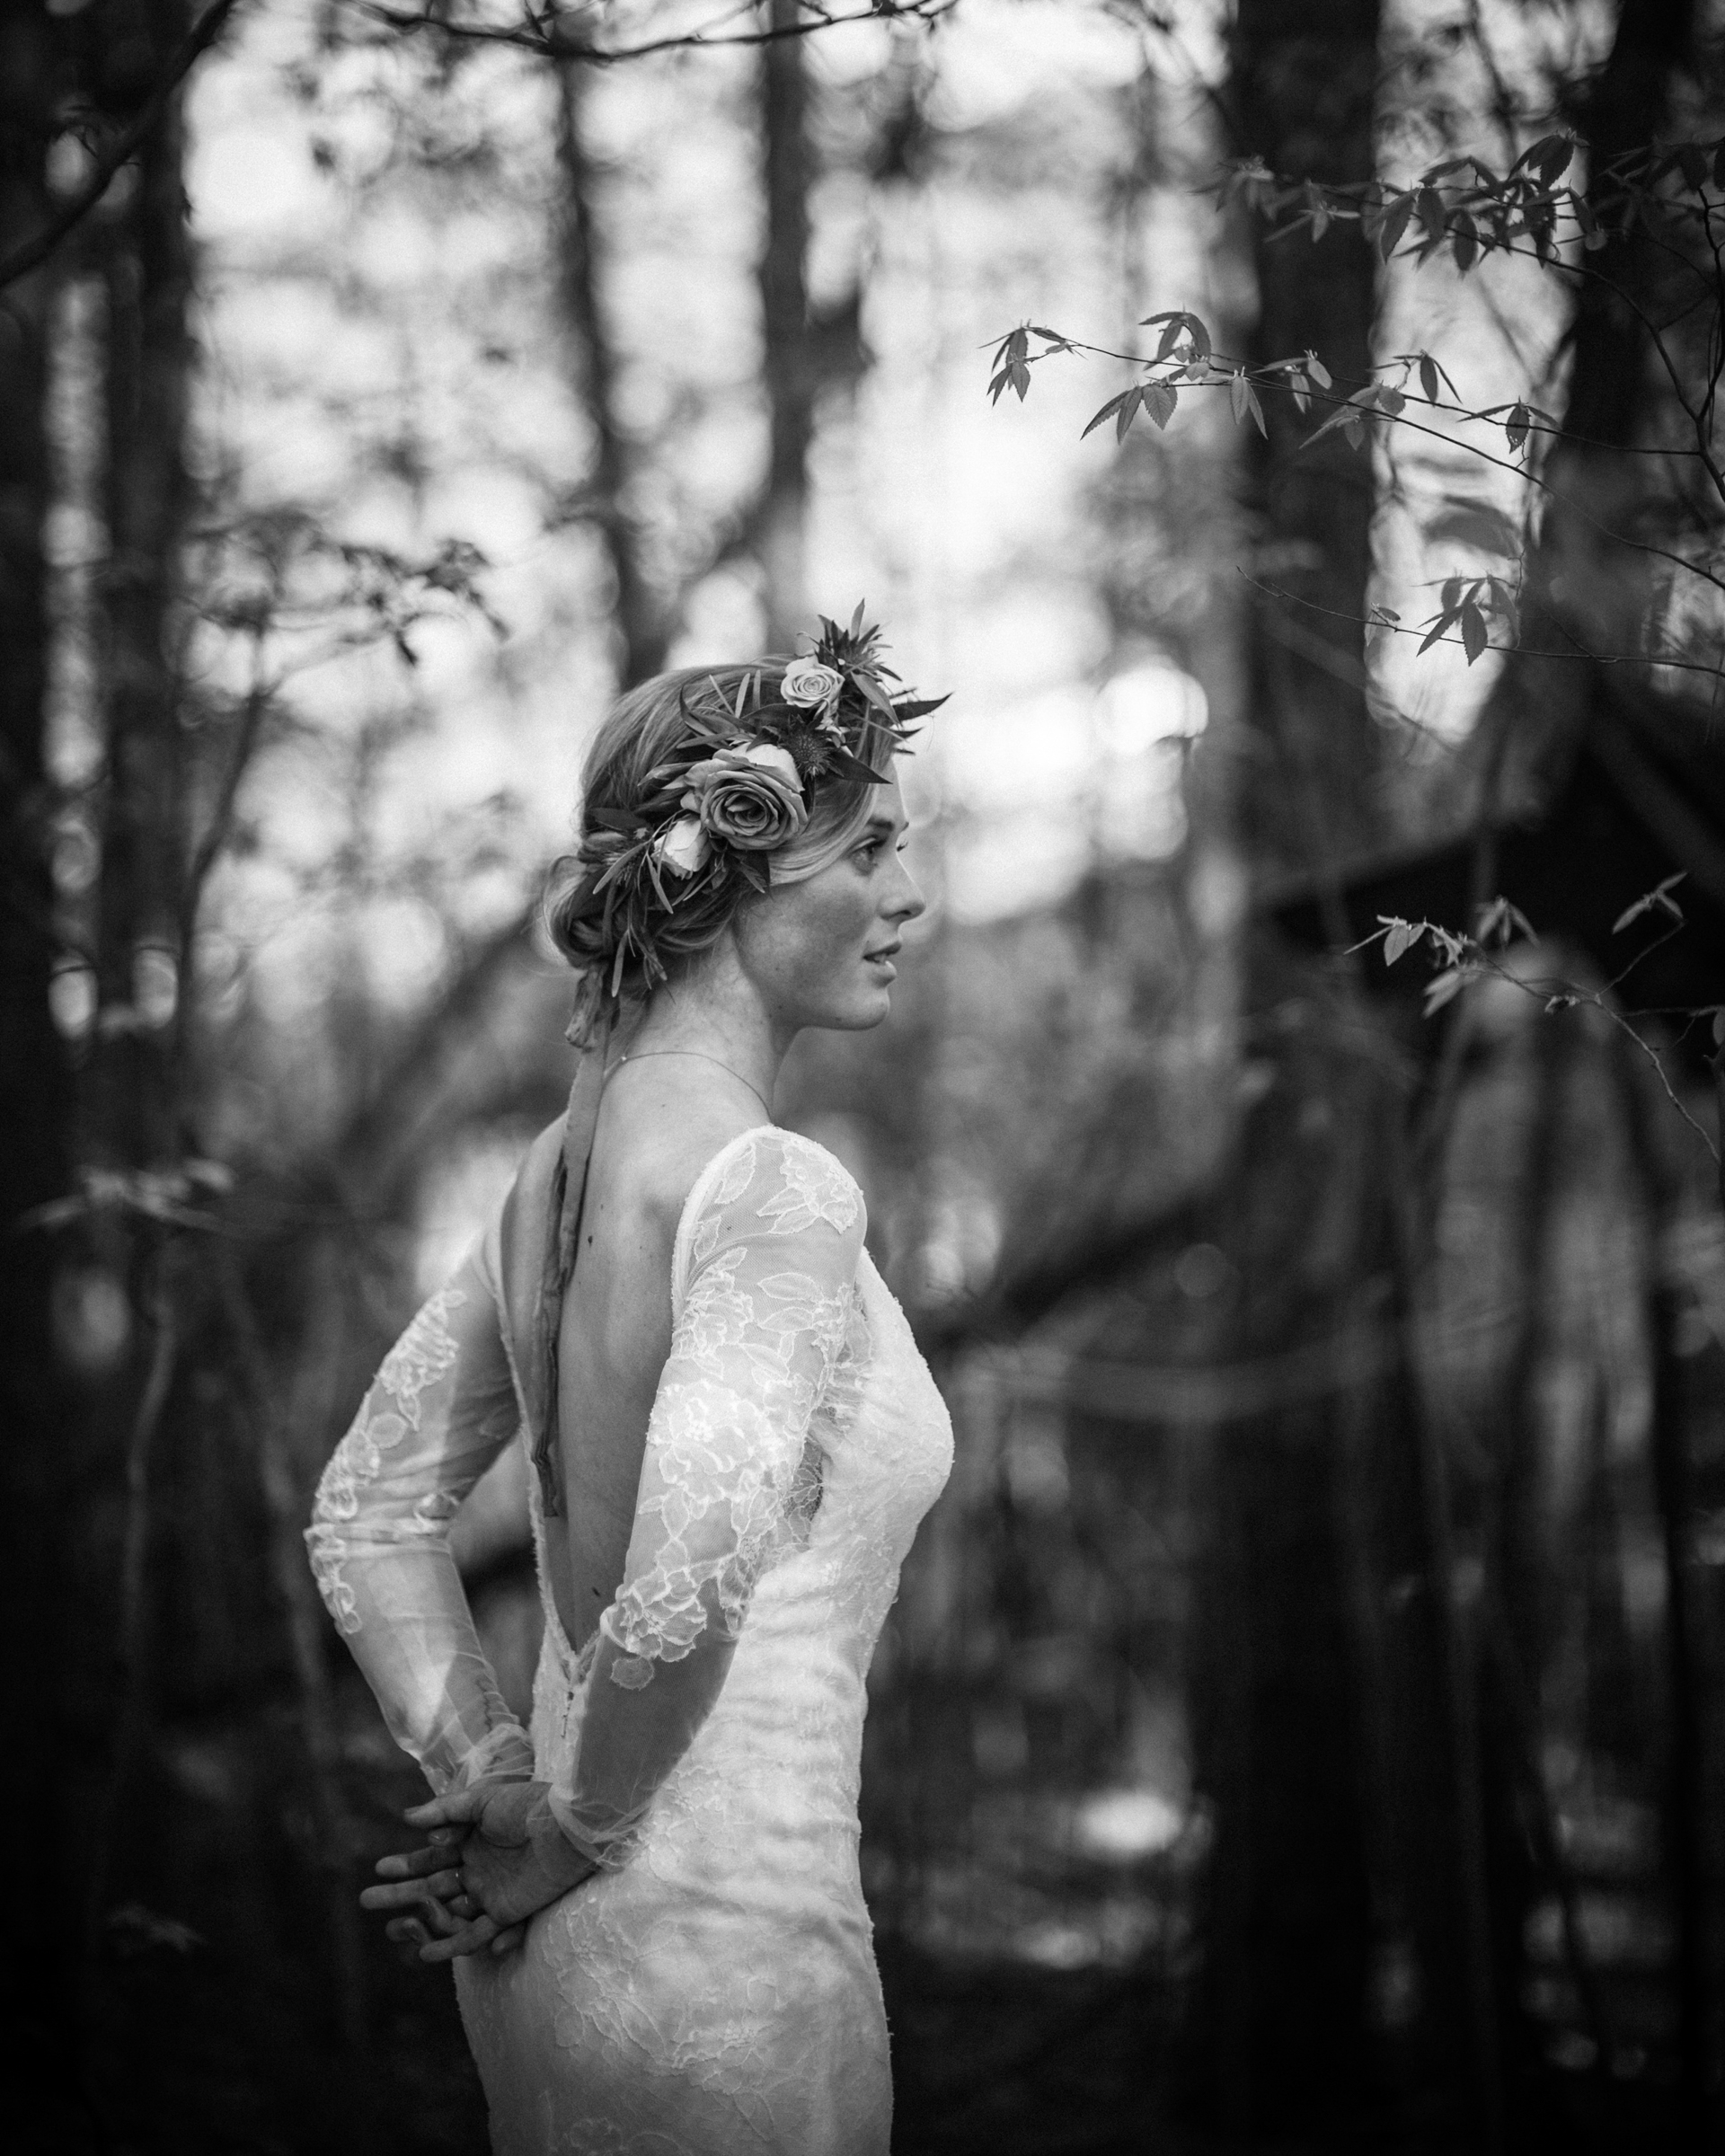 Bride with floral crown in forest by Richard Israel